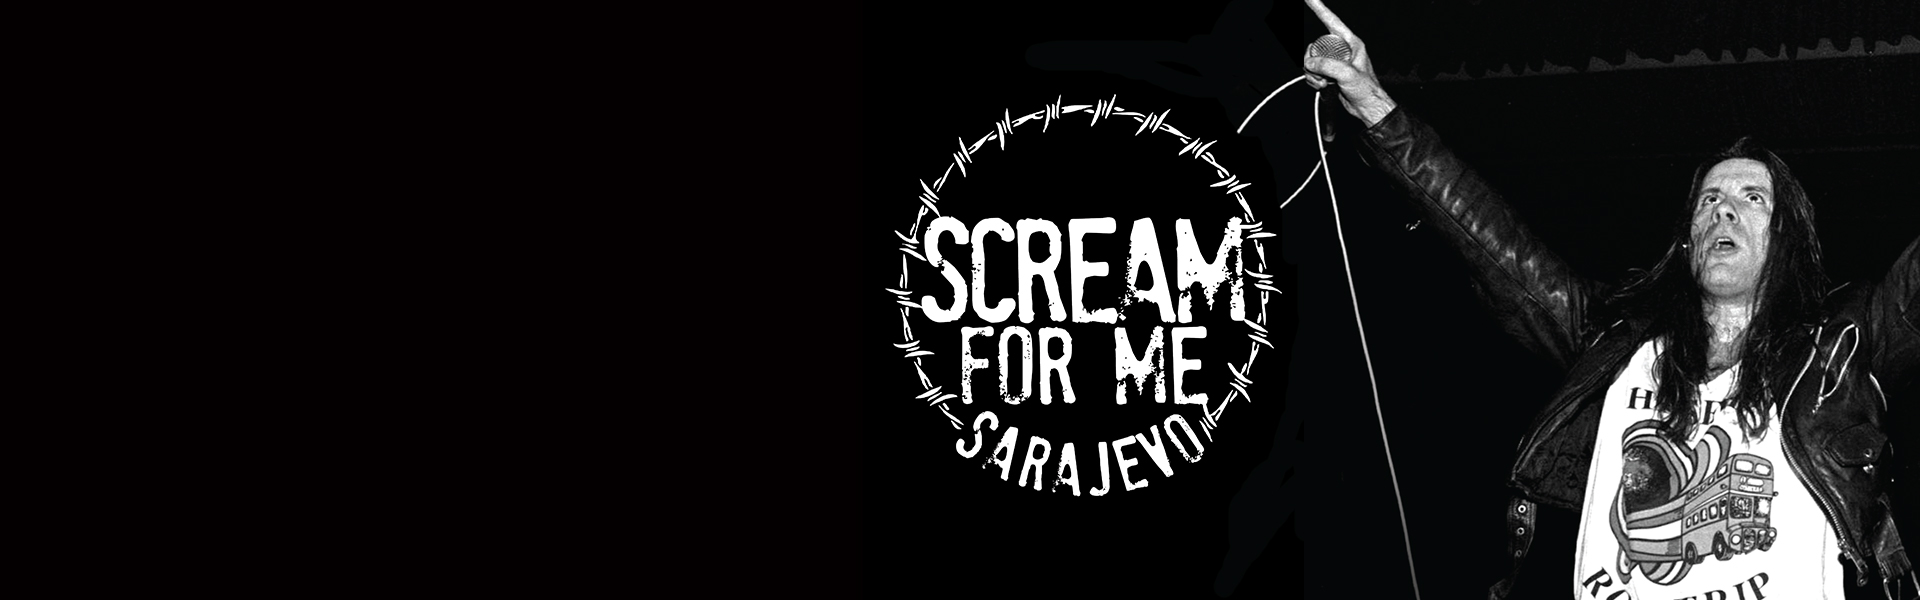 Scream For Me Sarajevo - Theatrical Release